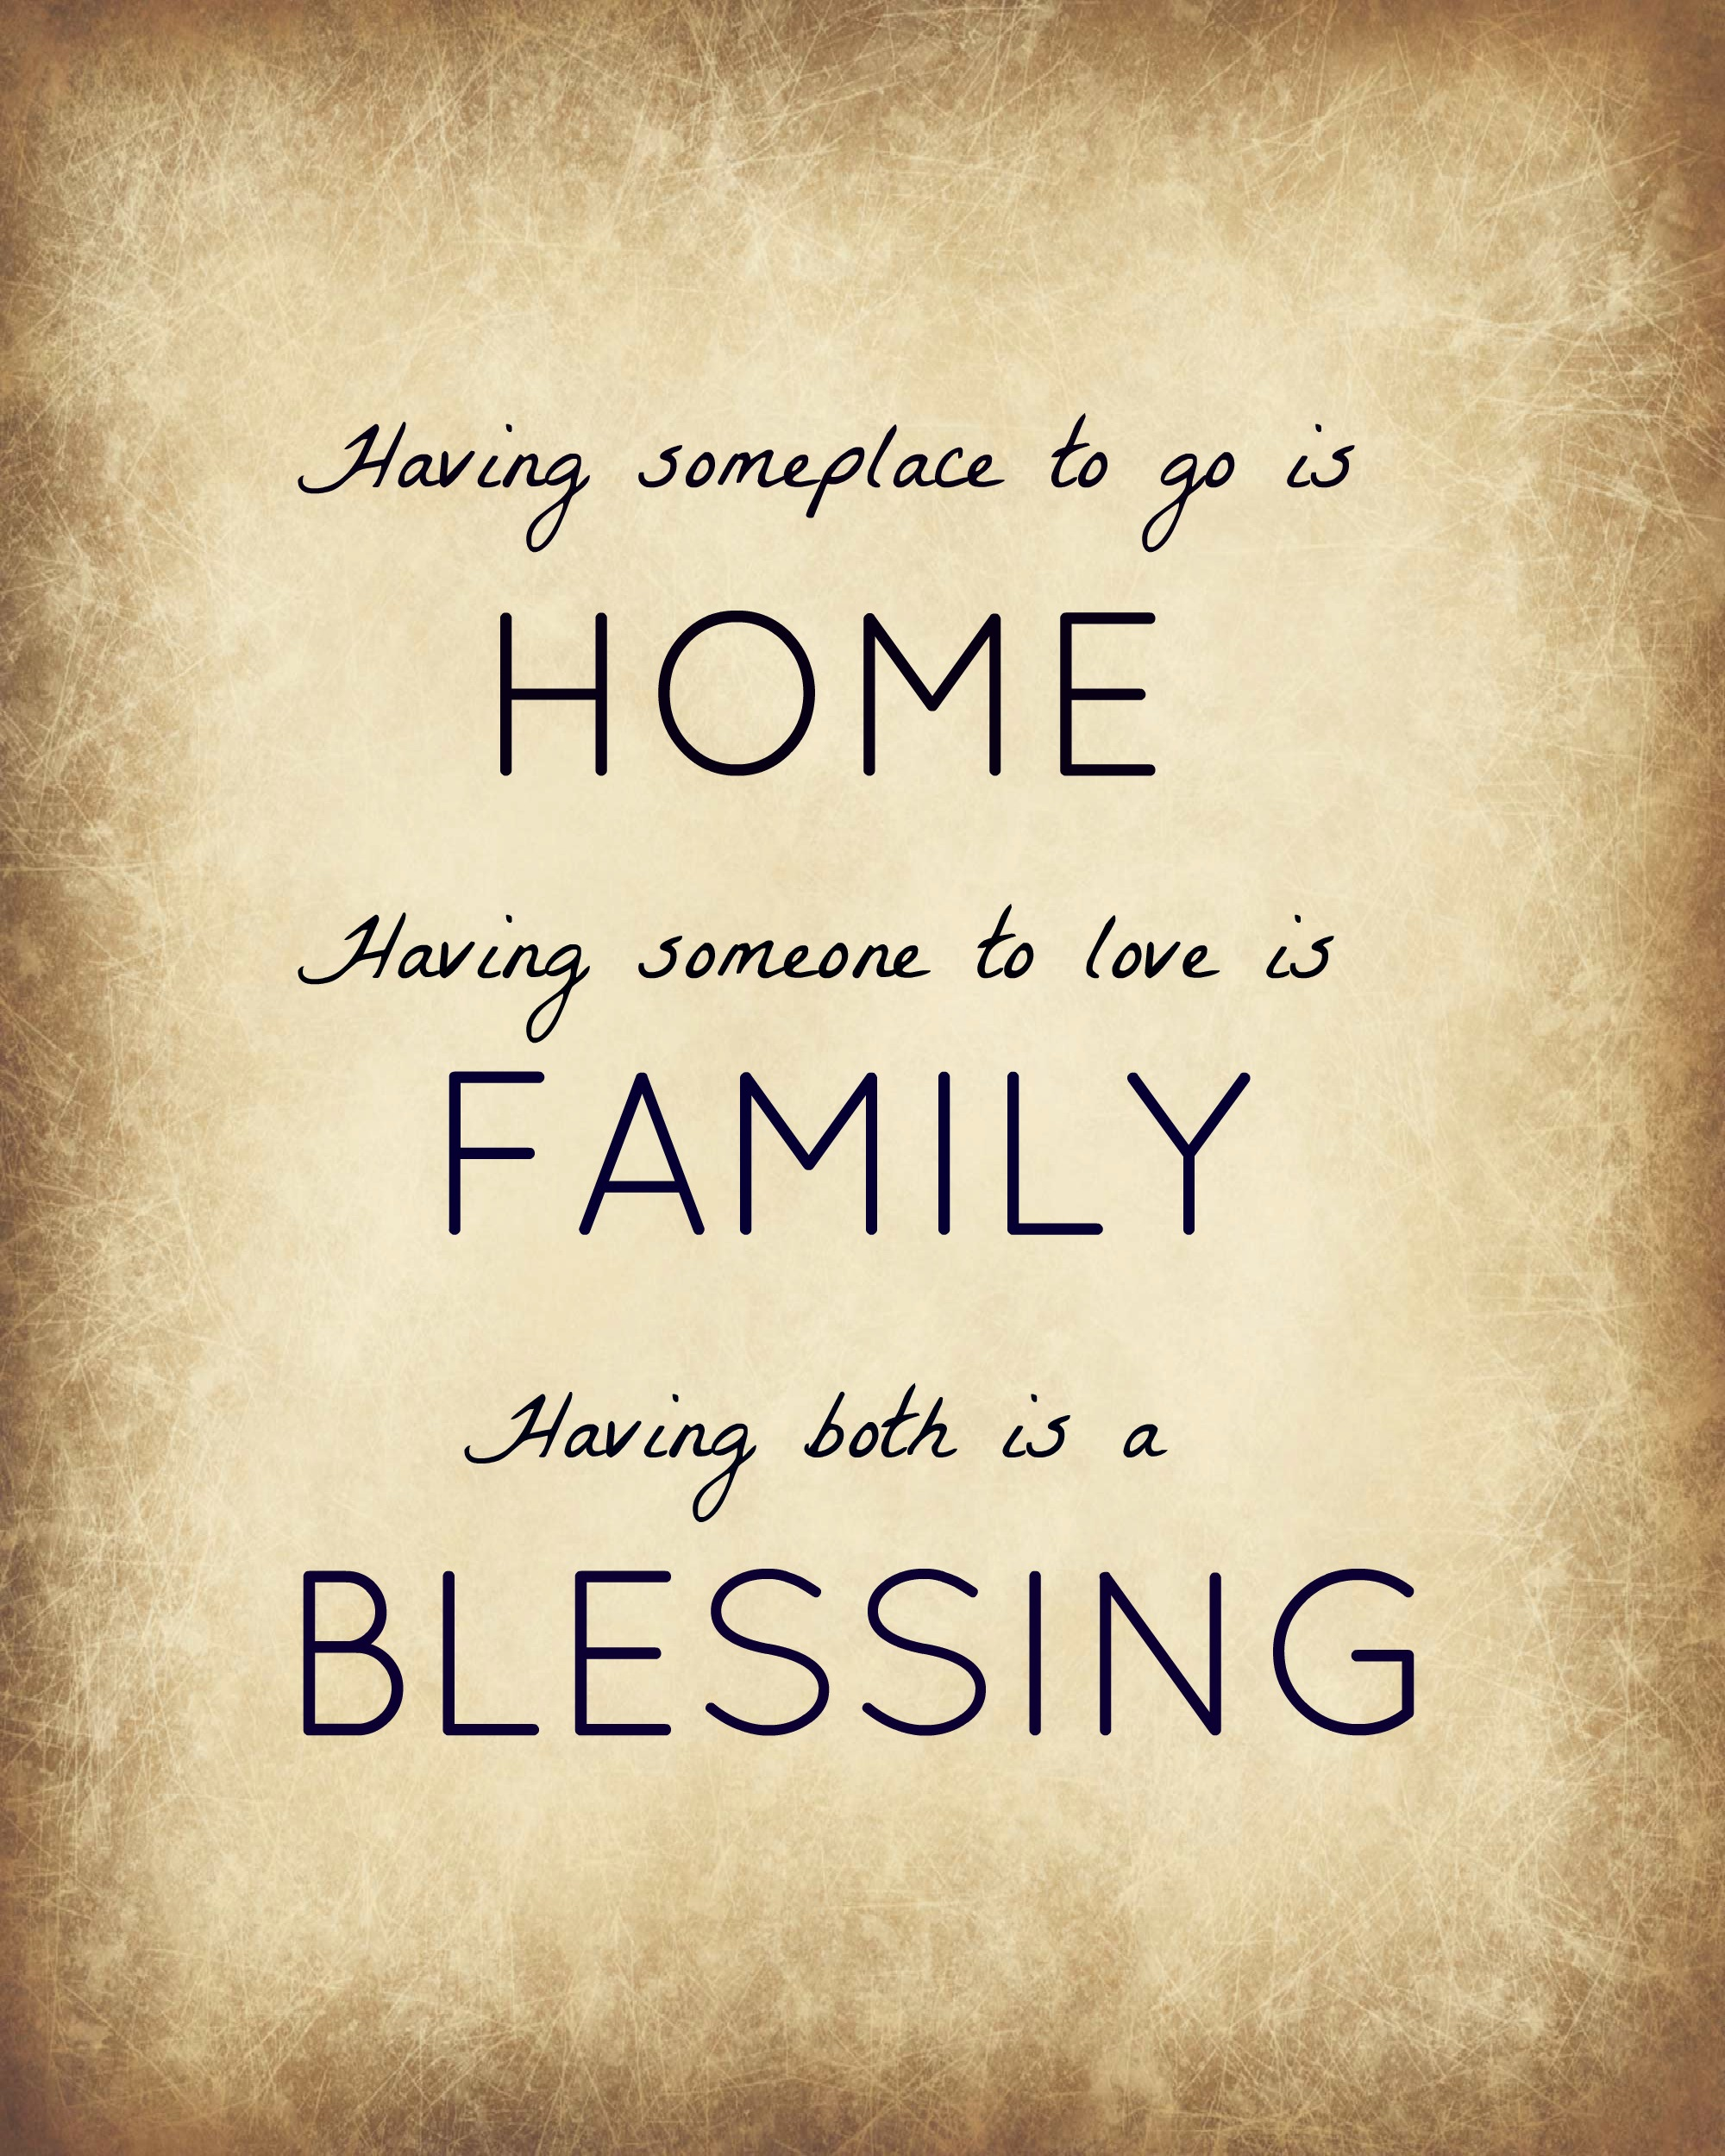 Blessings Quotes: Home Blessing Quotes. QuotesGram